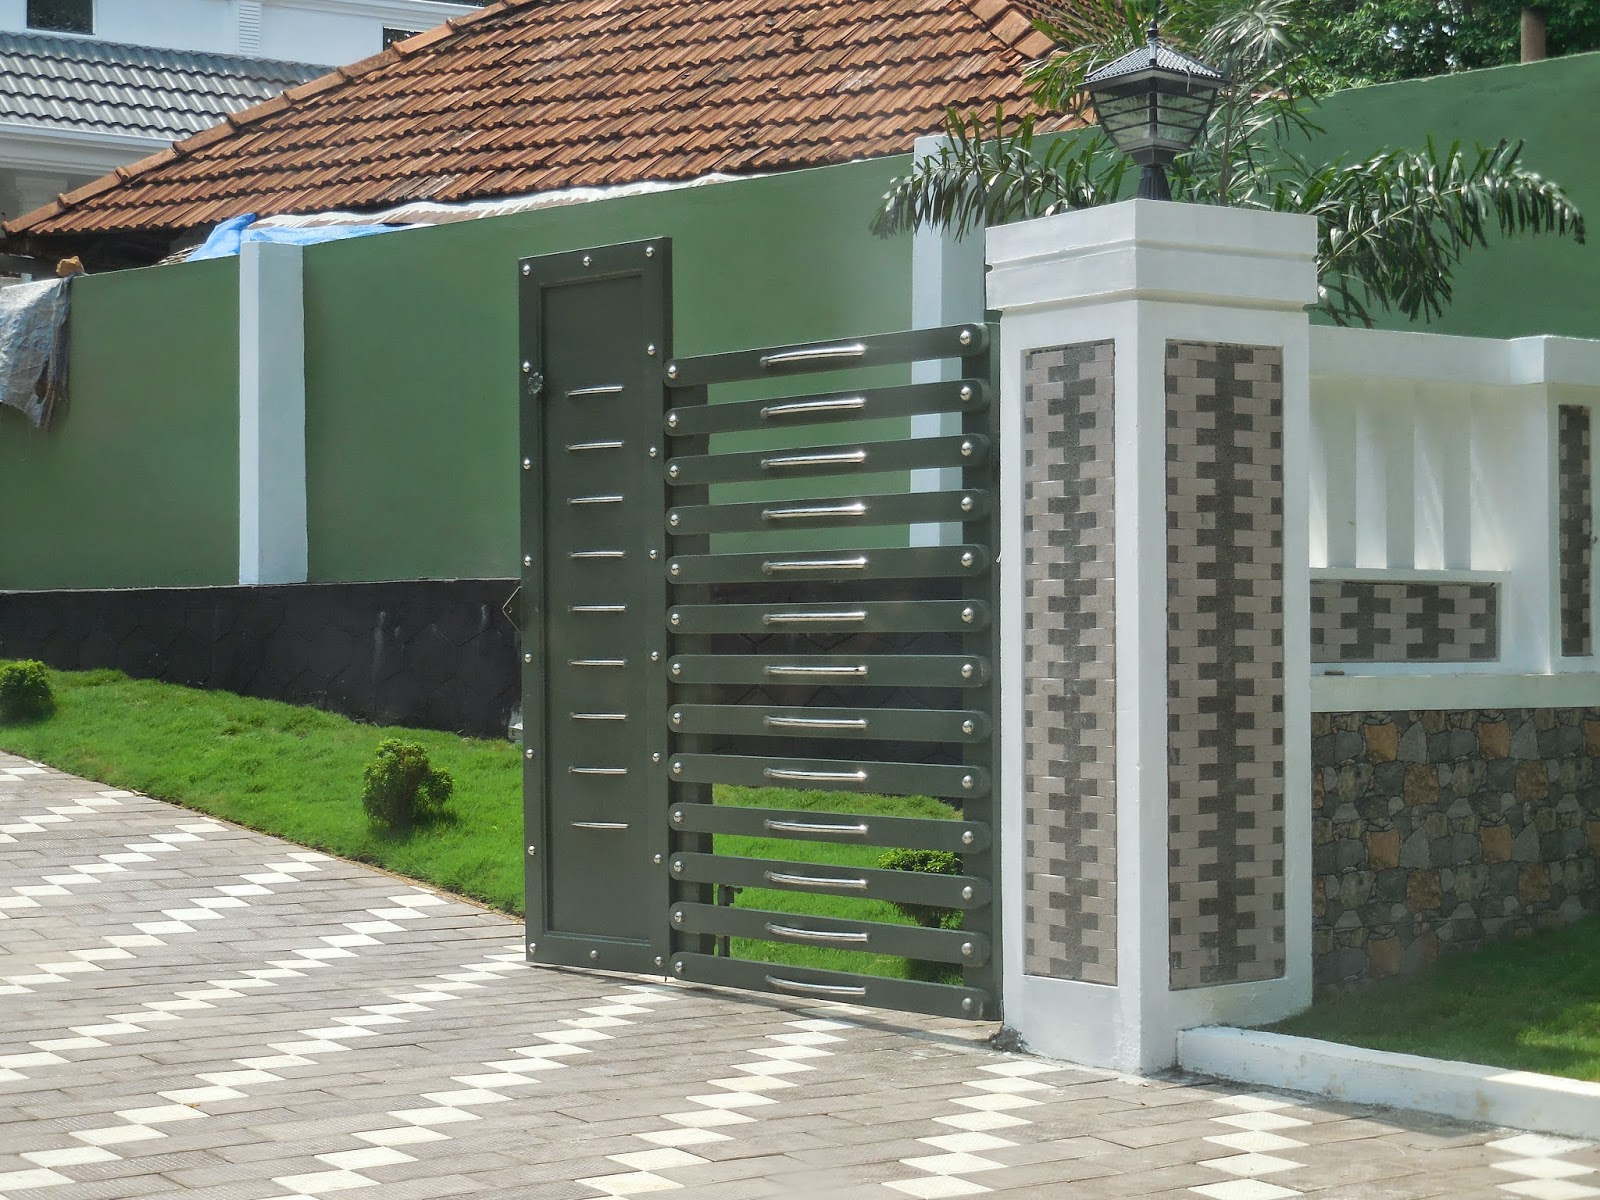 kerala gate designs pictures of kerala house gates. Black Bedroom Furniture Sets. Home Design Ideas